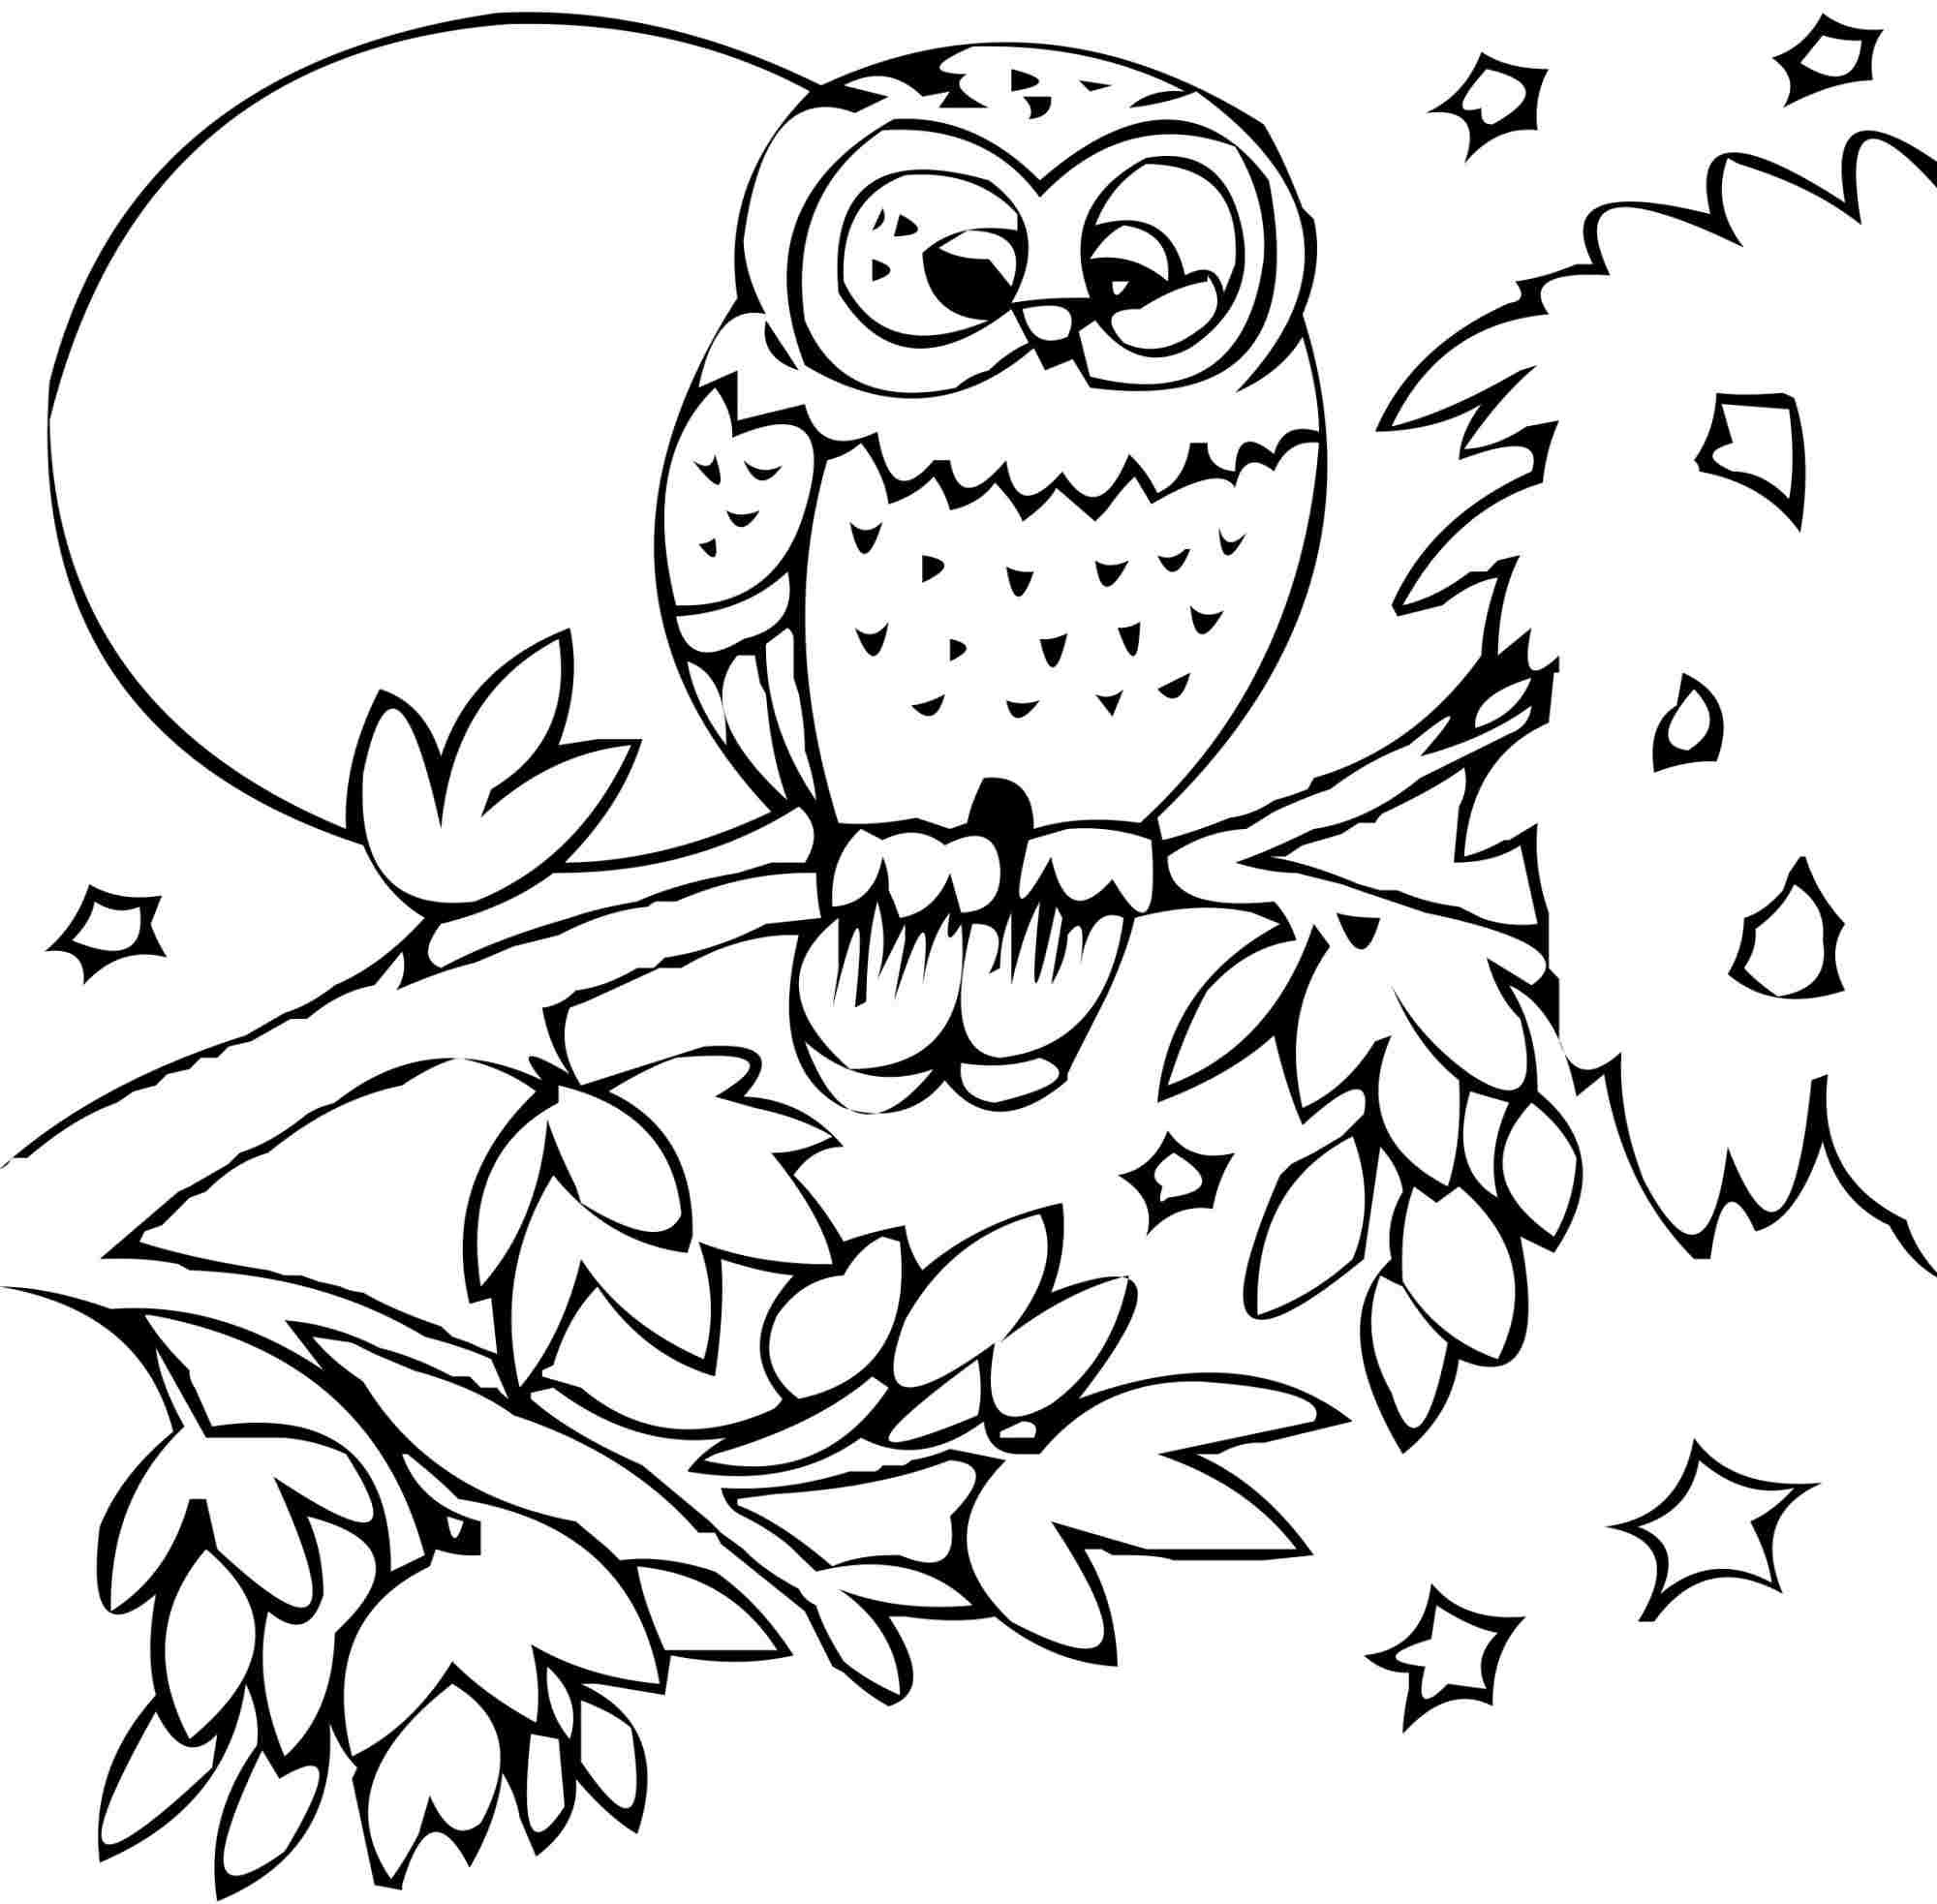 Wildlife Coloring Books  Zoo Animals Coloring Pages coloringsuite